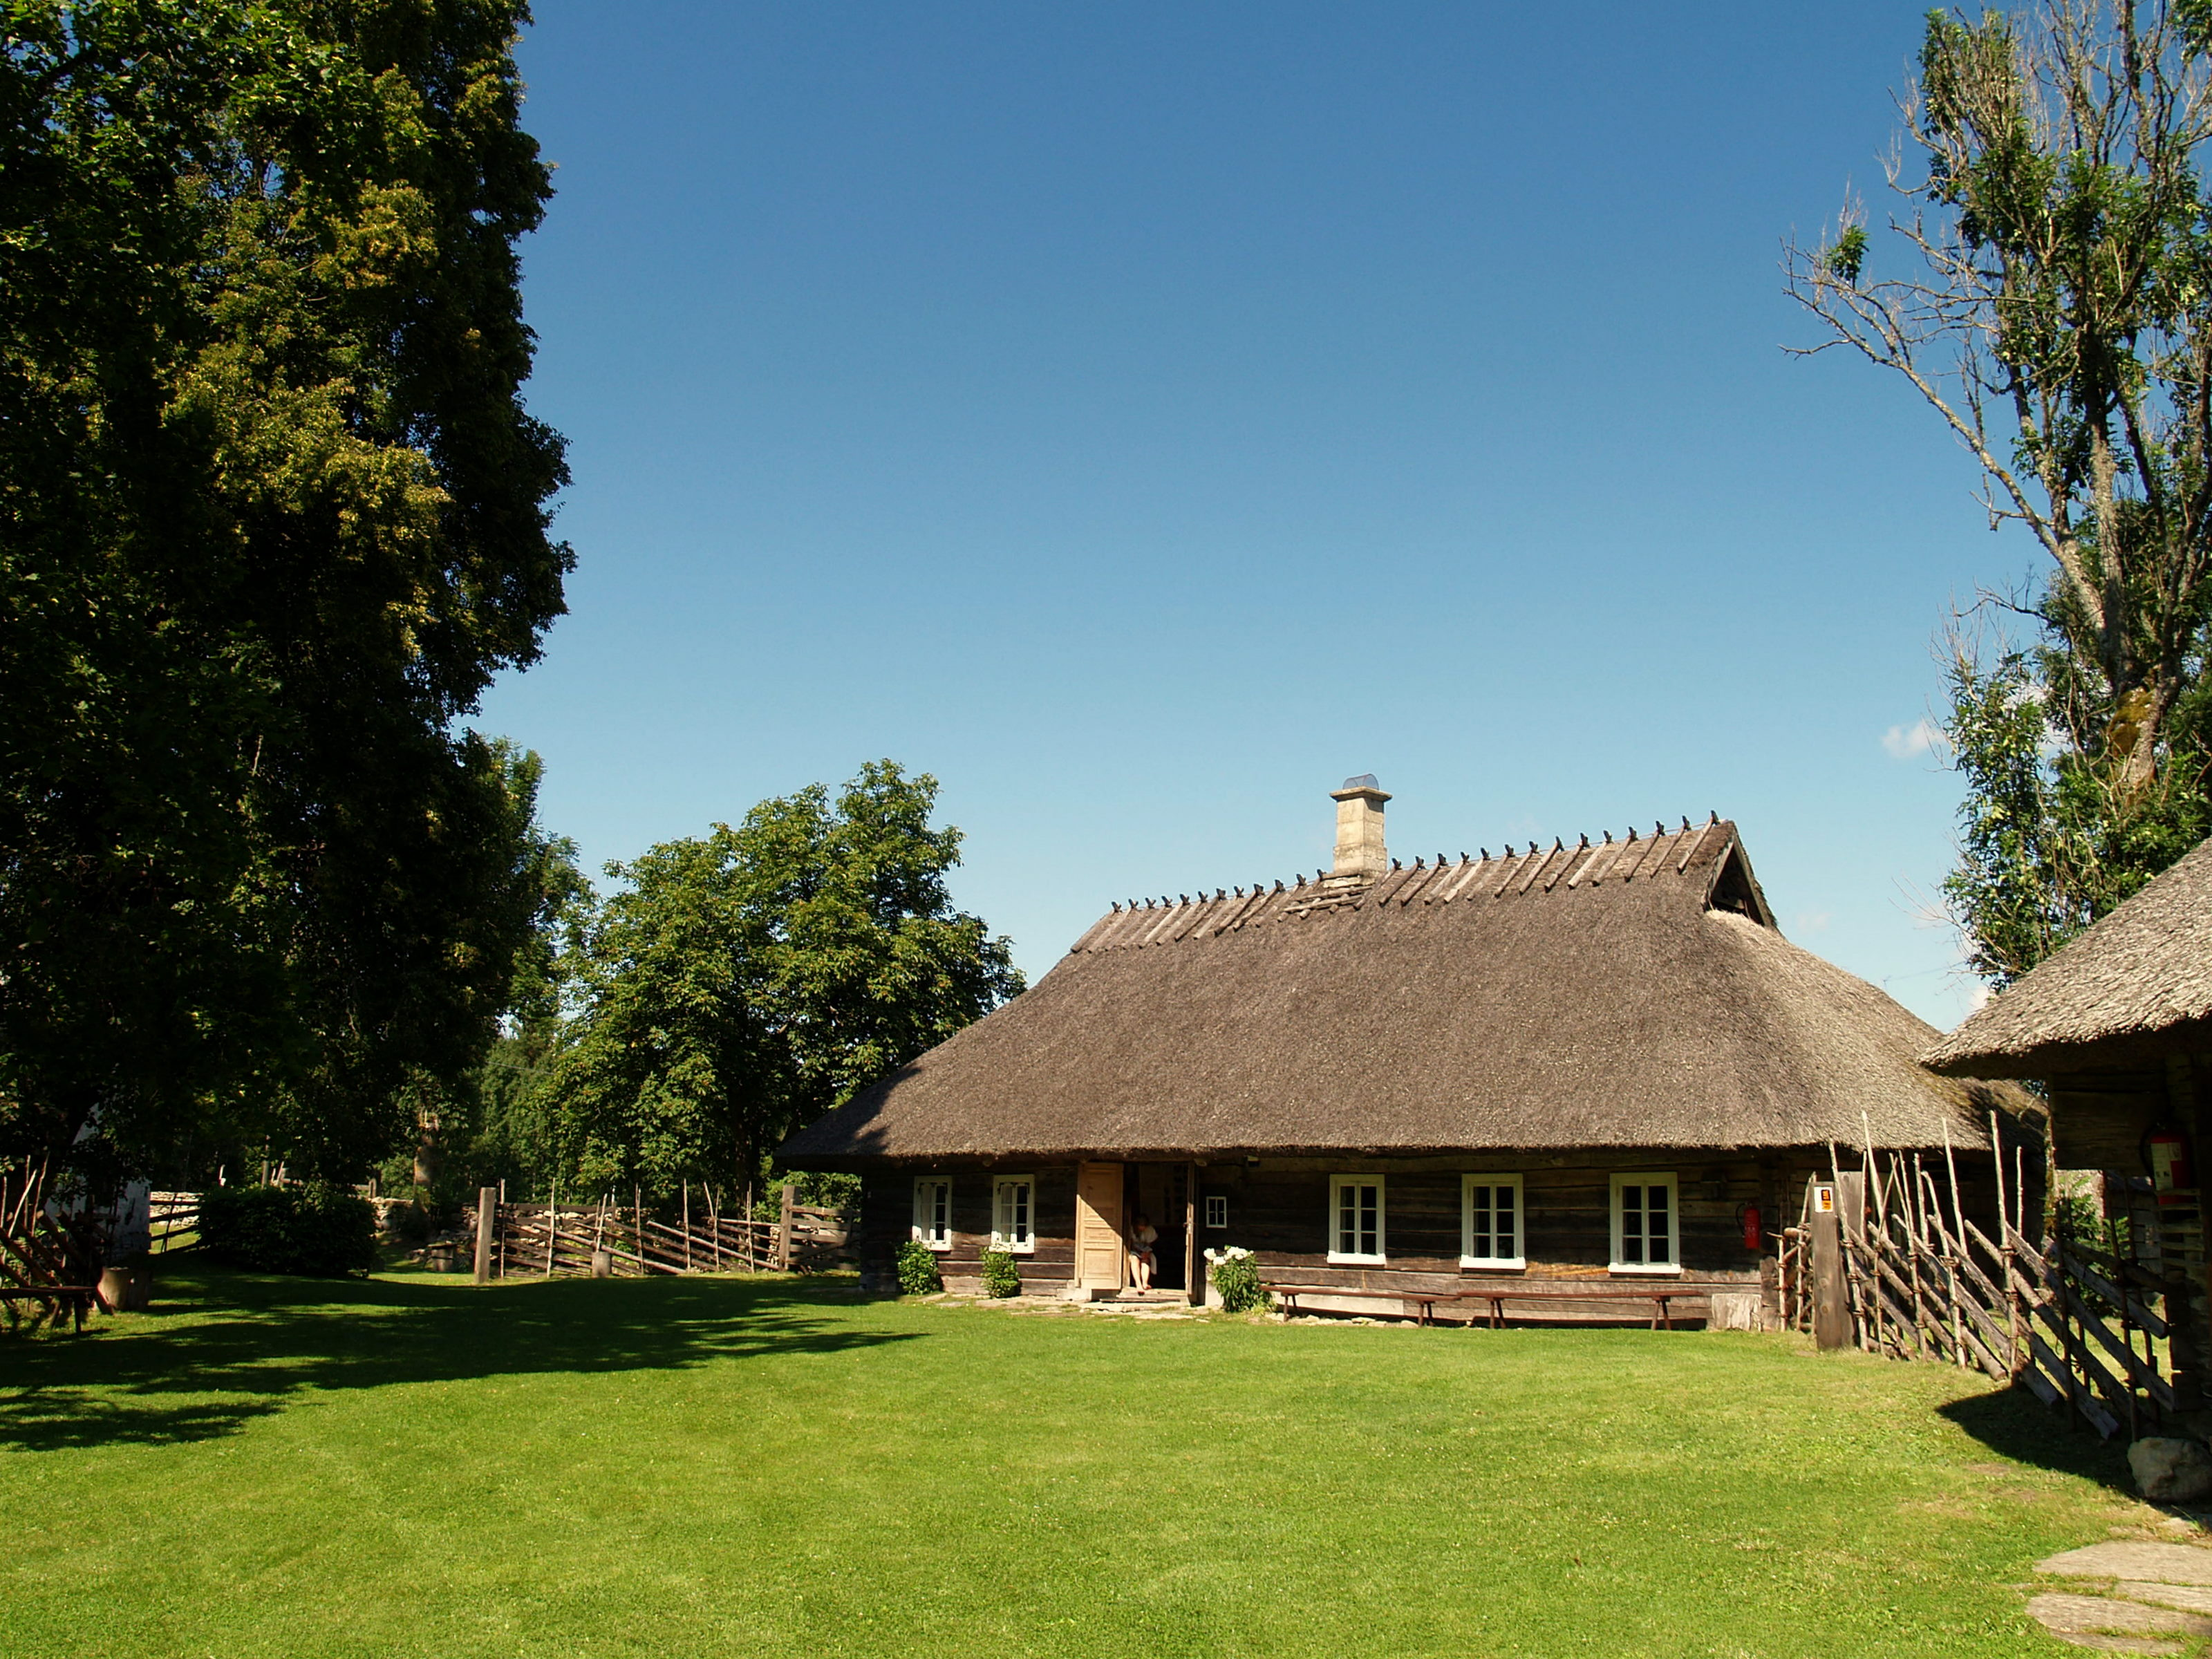 saaremaa dating Charming rustic dwelling on saaremaa island, estonia find this pin and more mostly dating back to century an where we had truly the most amazing mushroom soup.